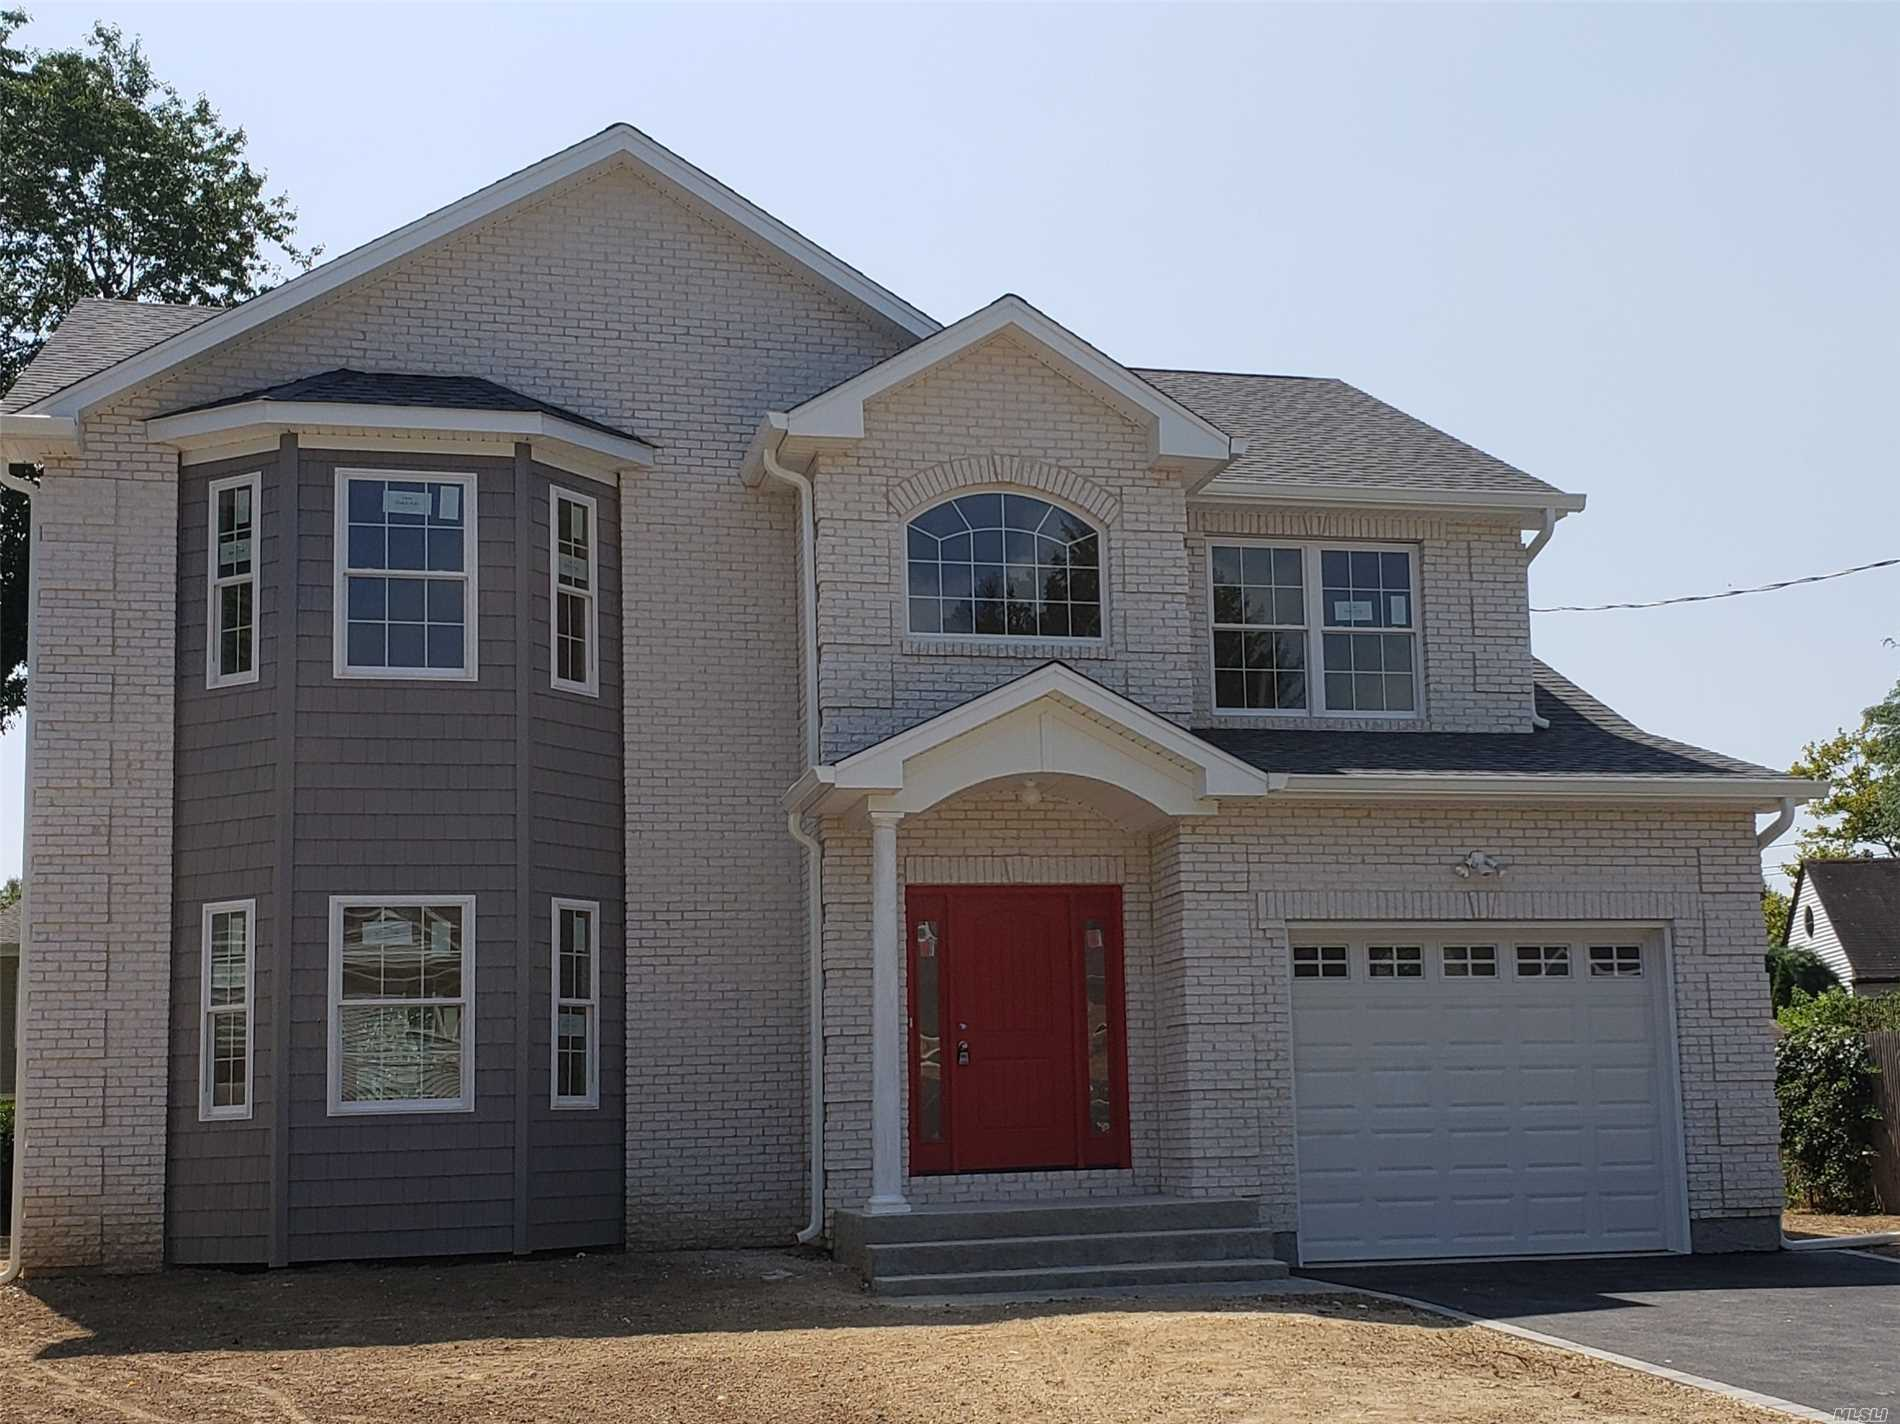 To Be Built !! Exceptional! 4Br, 2.5Bth, Colonial, Spacious Open Floor Plan, Gourmet Eik W/Stainless Appls, Hardwood Floors Throughout, Cac, 2nd Flr Laundry, Luxurious Master W/Ensuite, Dual Walk In Closets, Custom Millwork, 8 Ft Ceiling Basement W/ Ose. Photo Not Exact.